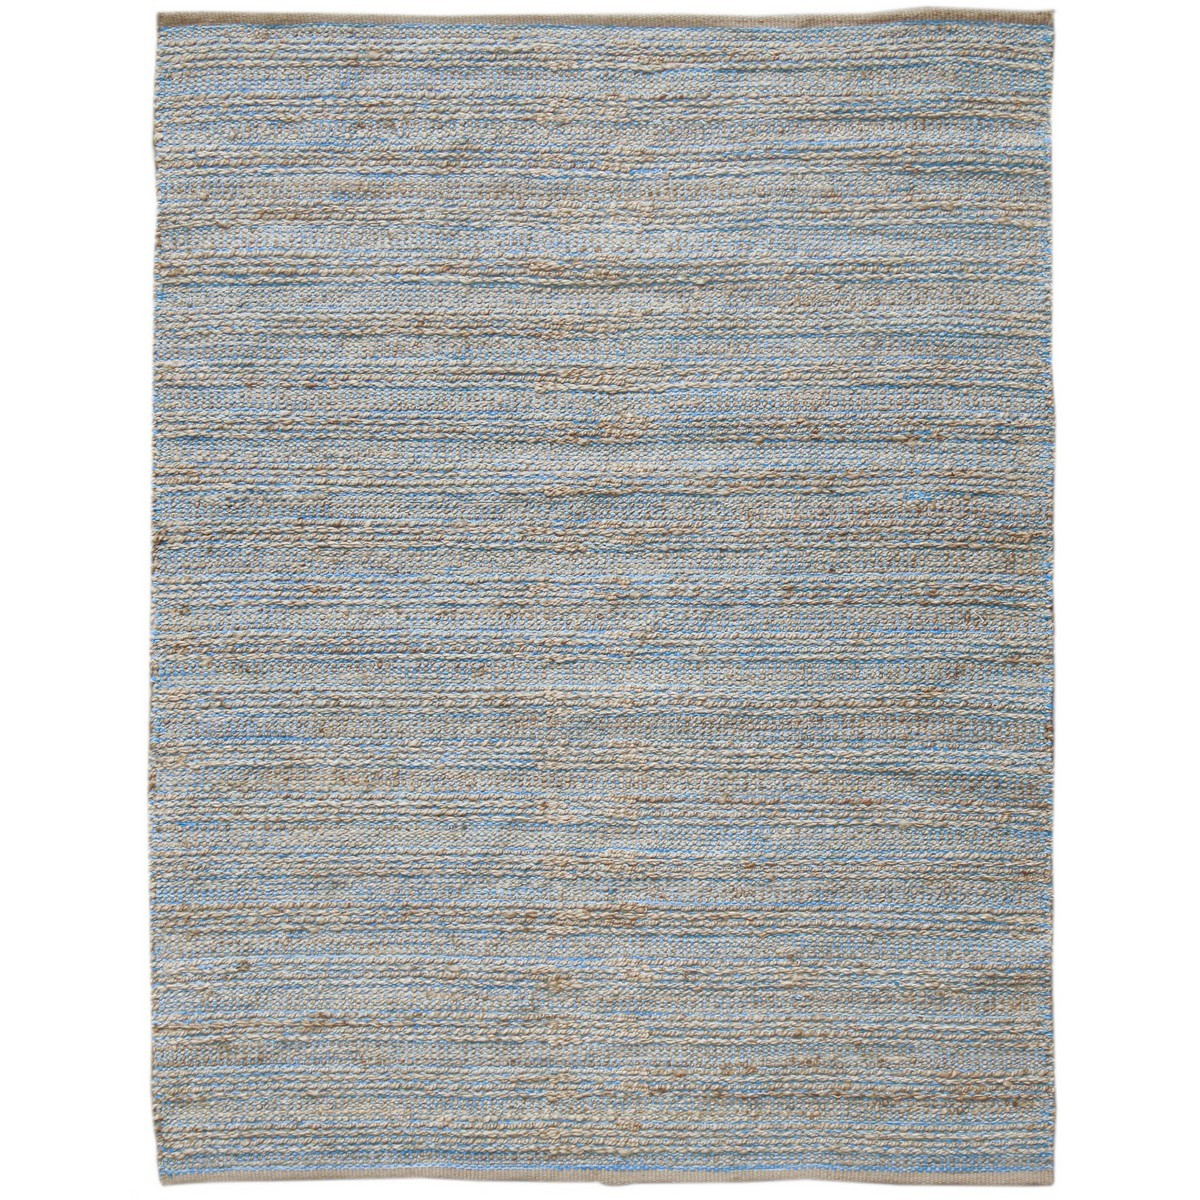 Natural Charm Handwoven Jute Rug , 160x230cm, Blue